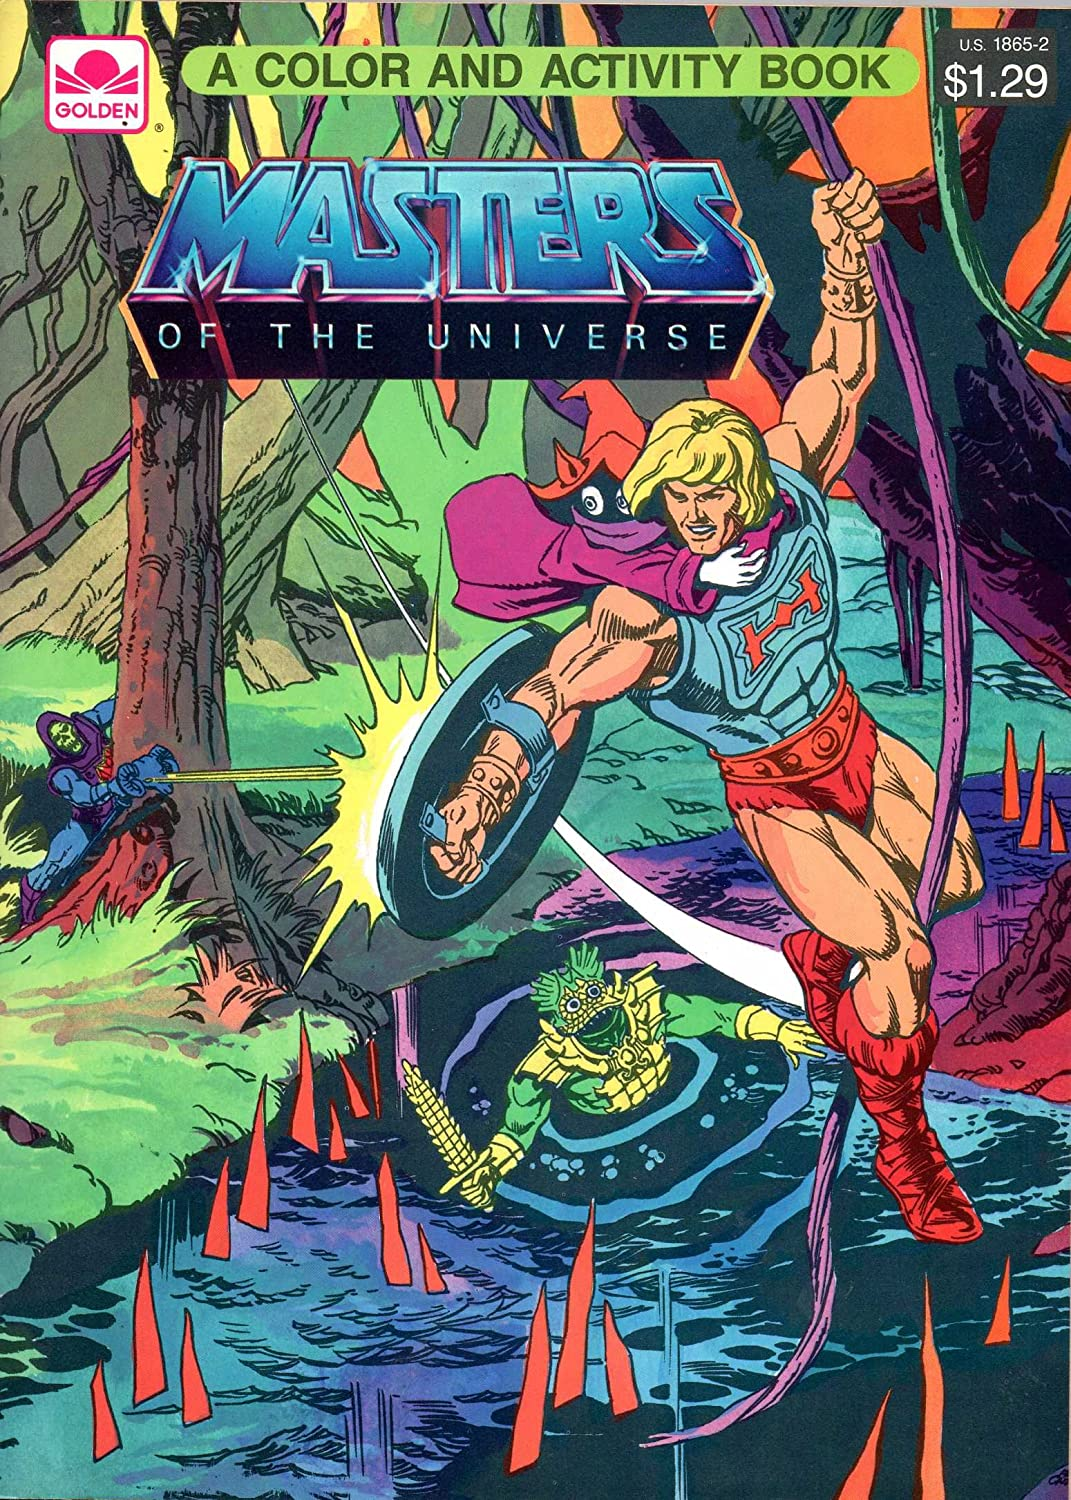 MASTERS OF THE UNIVERSE Farbe & Activity Book (Ausmalbuch): Golden Book 1985